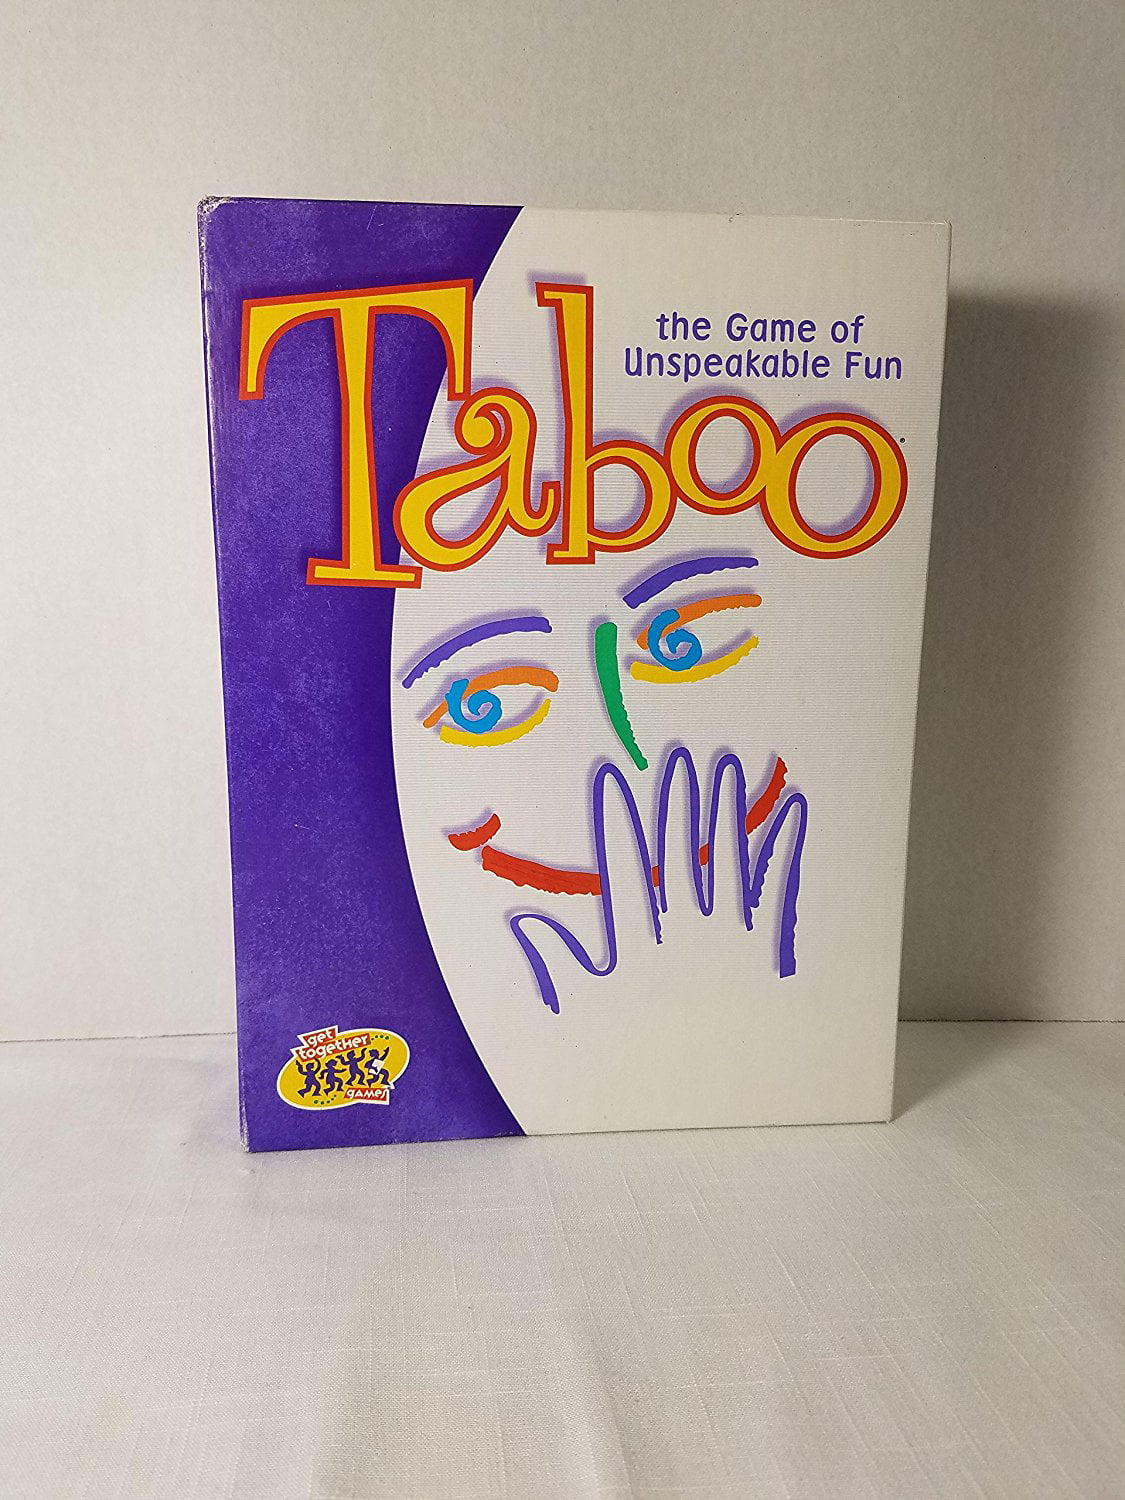 Taboo the Game of Unspeakable Fun (2000 Edition), For Adult By Milton Bradley Ship from US by